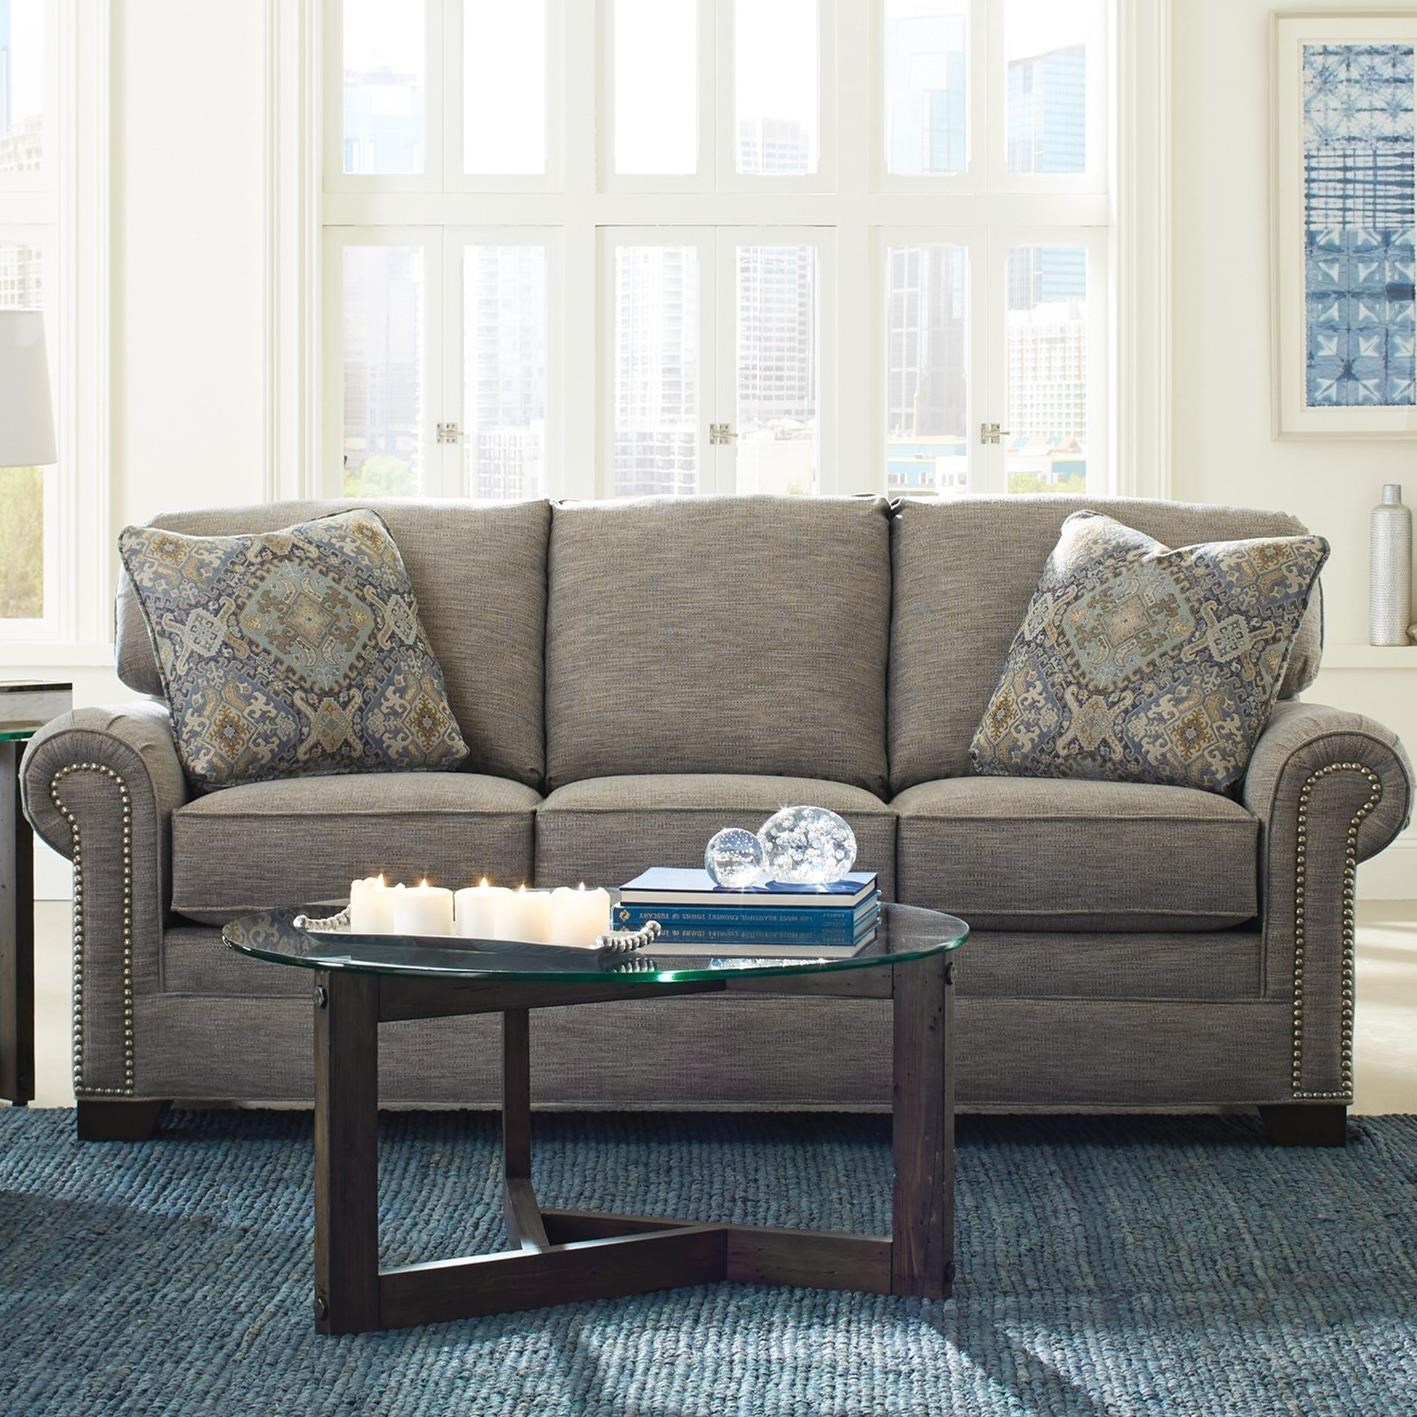 7565 Sofa by Craftmaster at Esprit Decor Home Furnishings